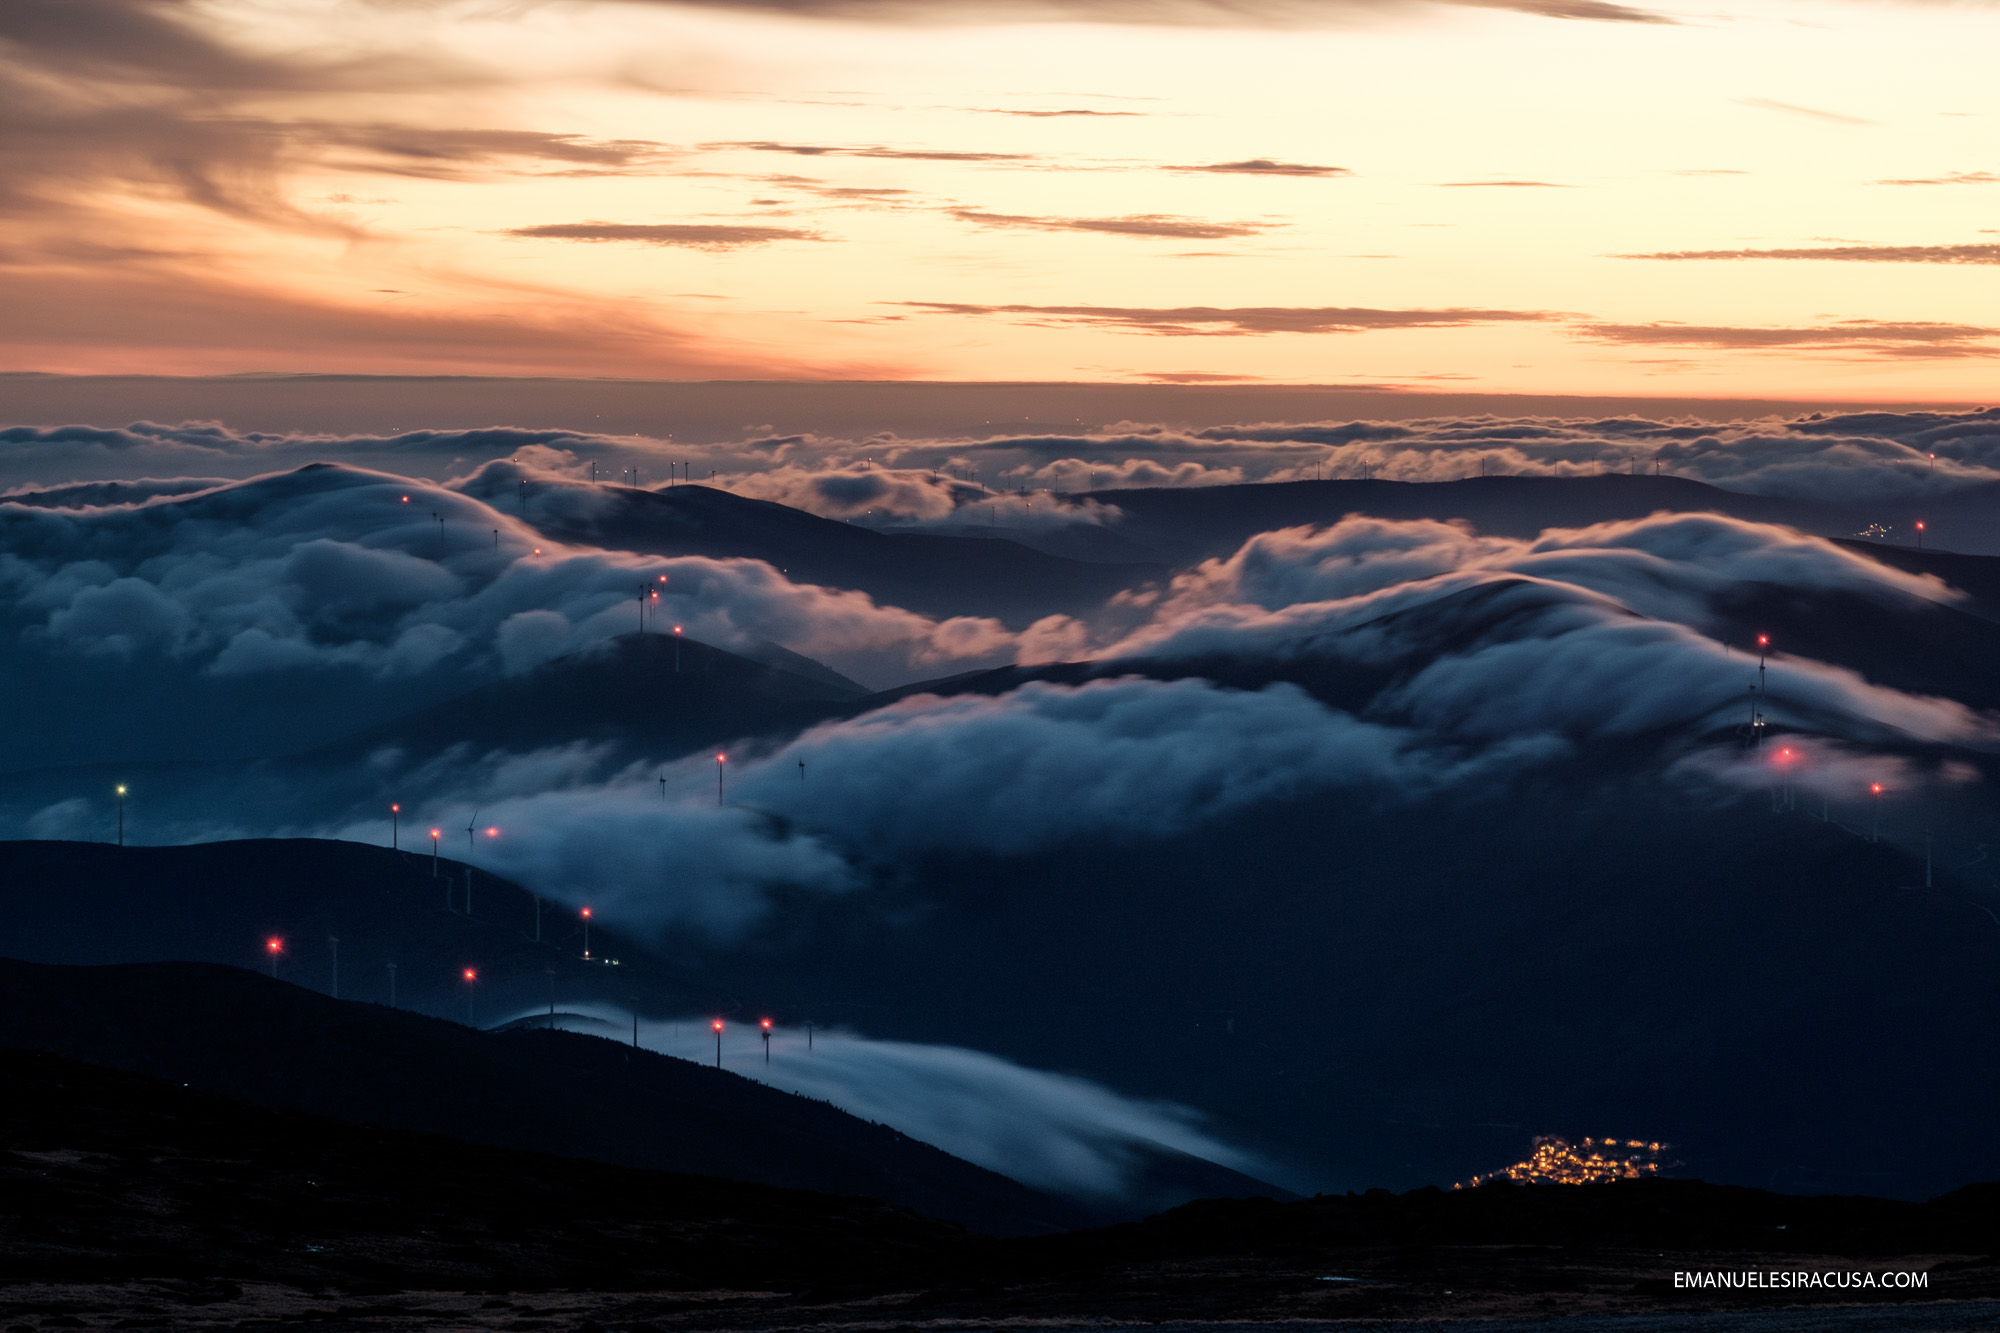 The view from Torre, the top of Serra da Estrela, at about 2000 meters, at twilight.